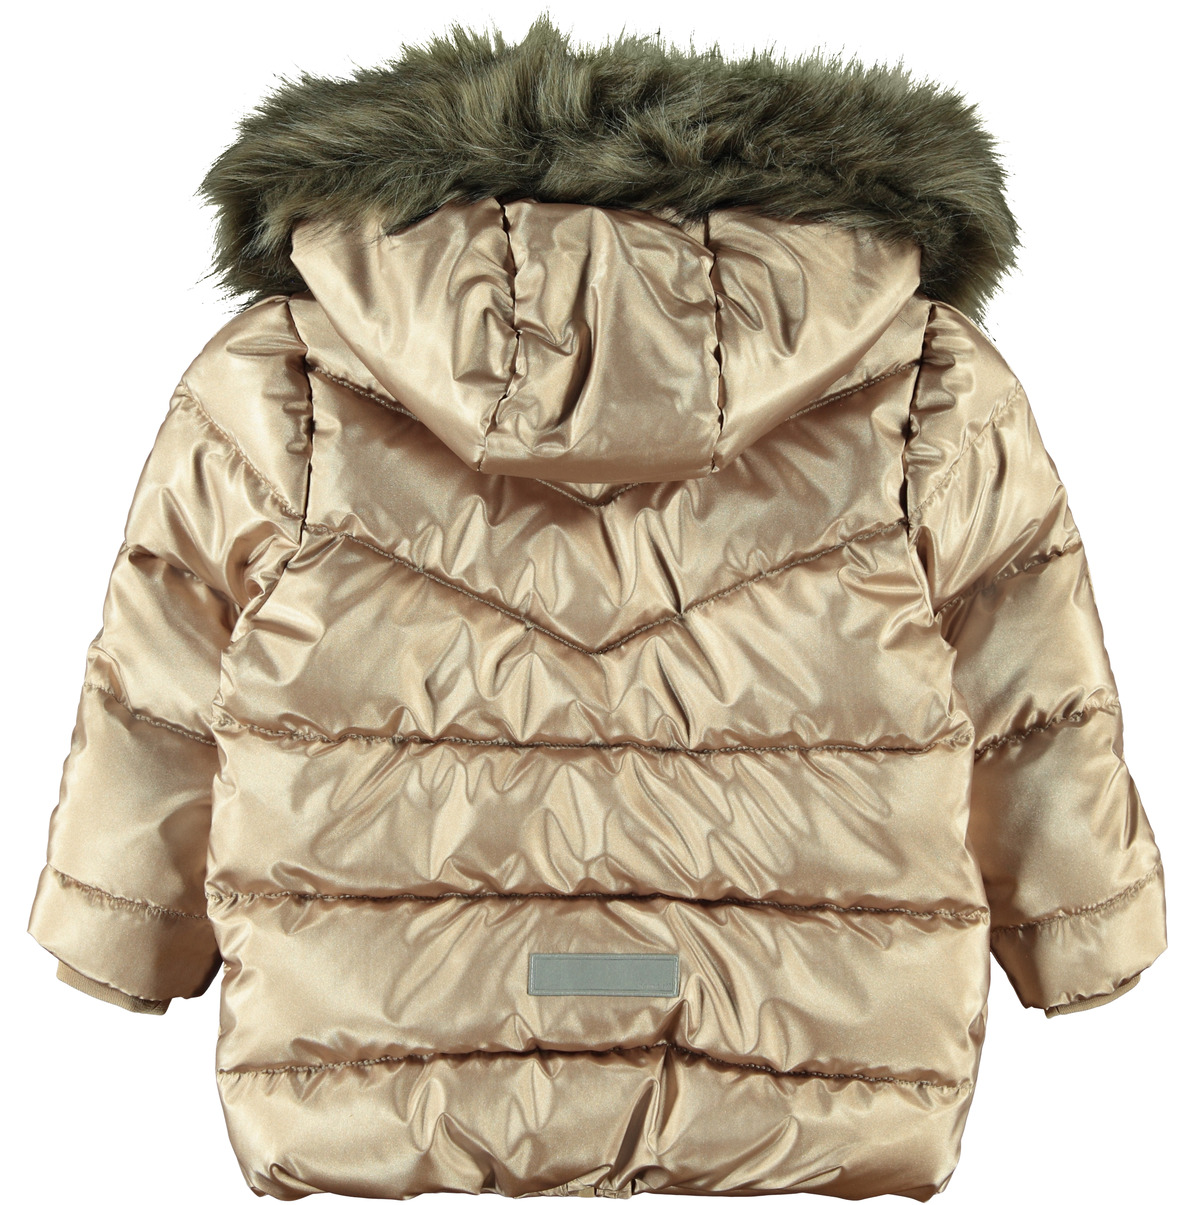 NAME-IT_AutumnWinter2020_3357754_13178668_8.jpg